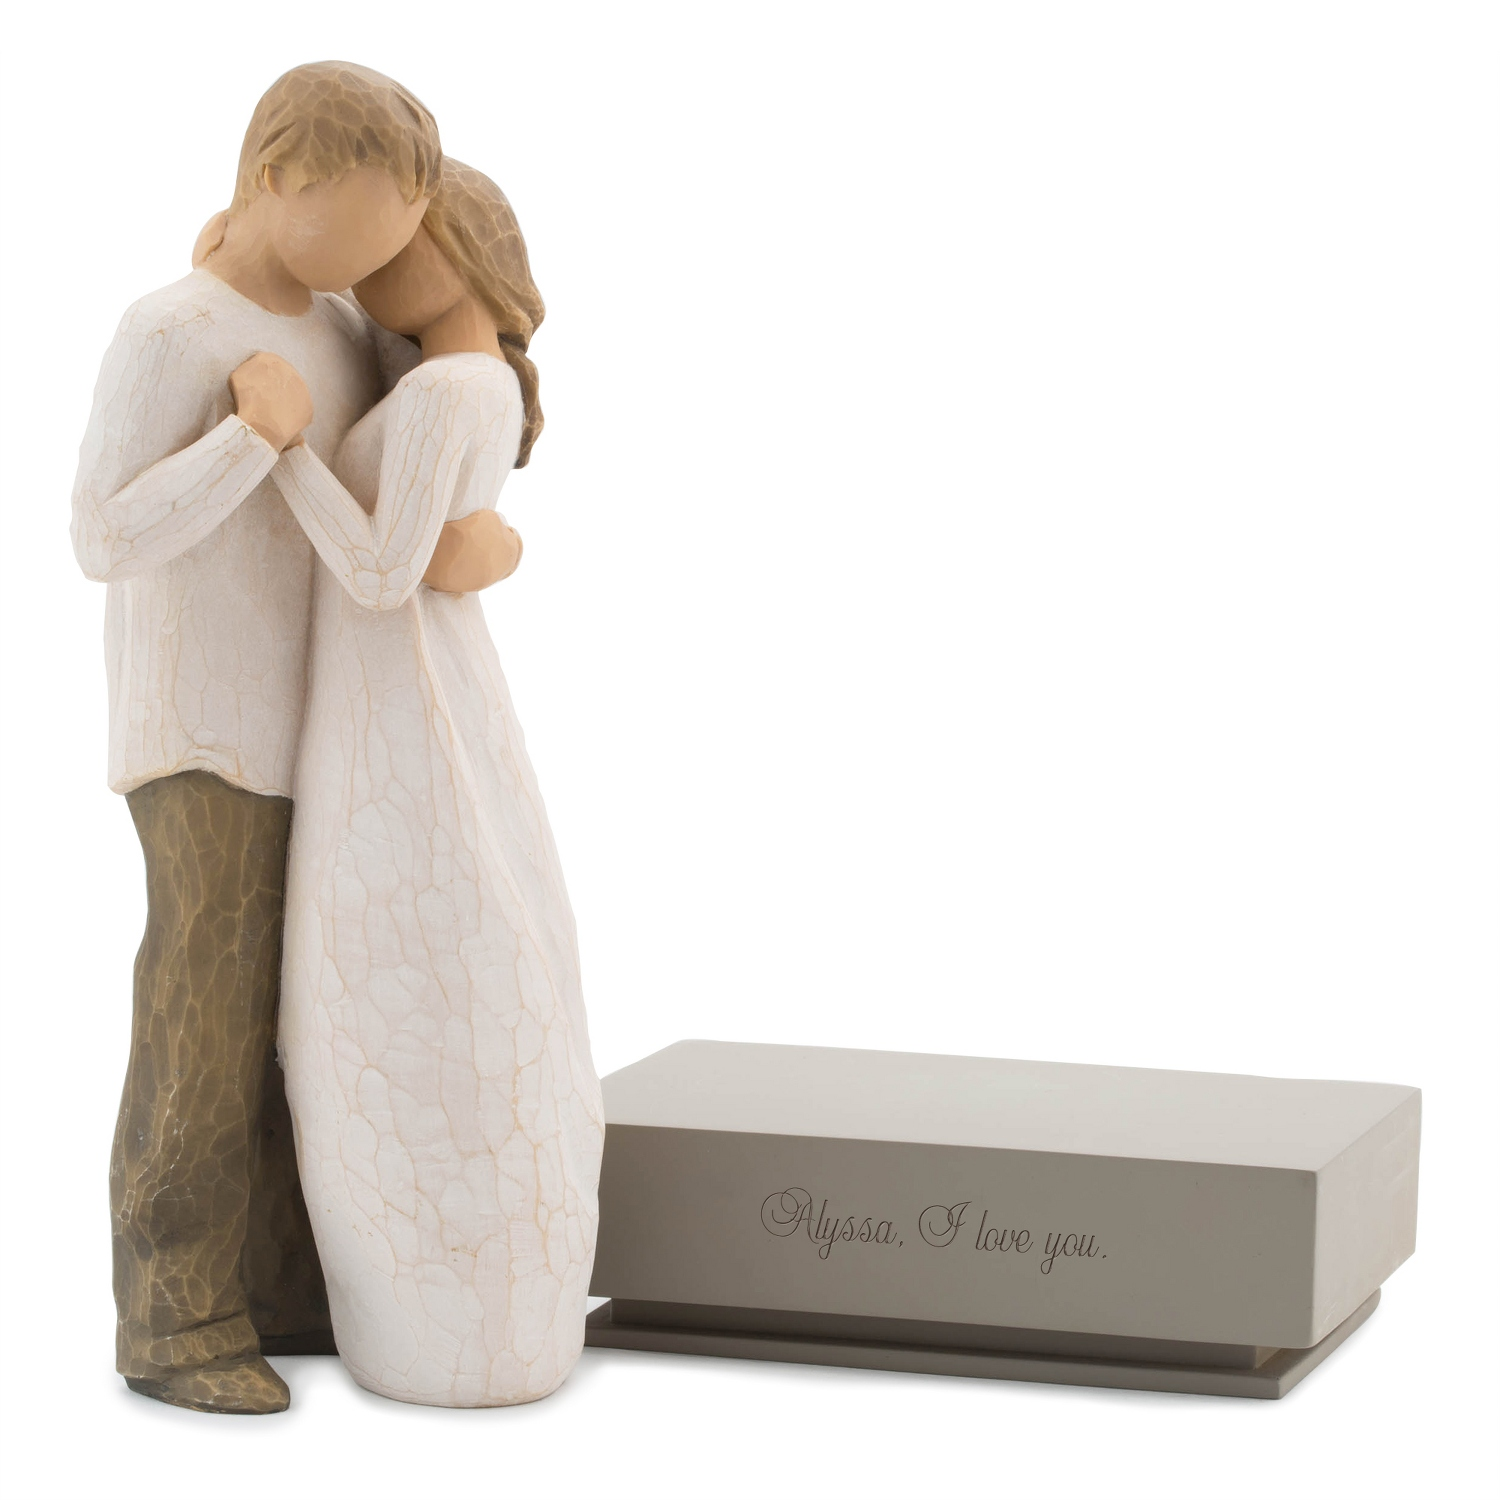 willow tree promise figurine with shelf stand. Black Bedroom Furniture Sets. Home Design Ideas